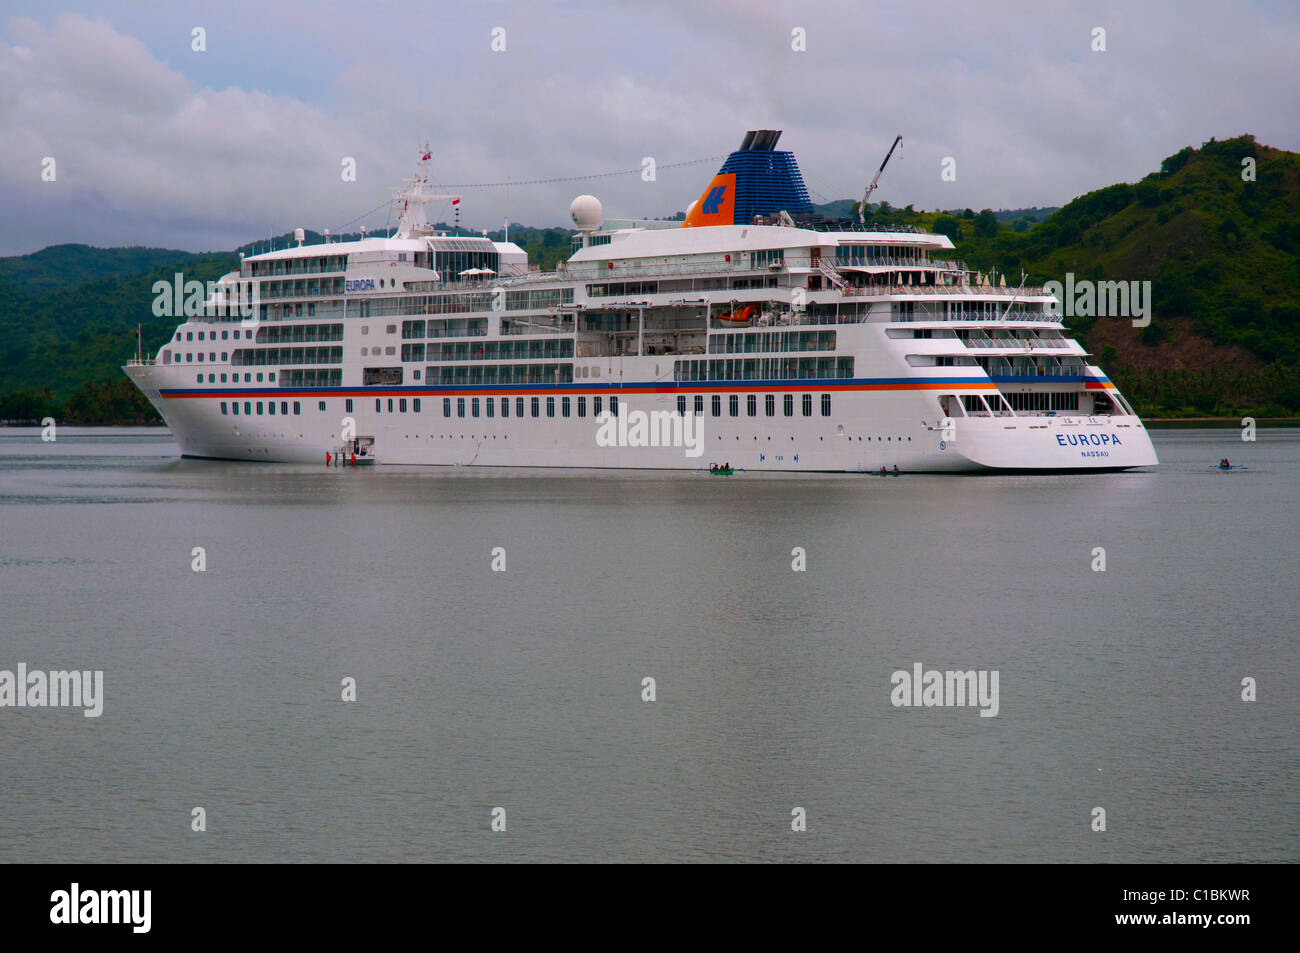 The 5 star luxury cruise liner the Europa at anchor off the island of Lombok in Indonesia - Stock Image